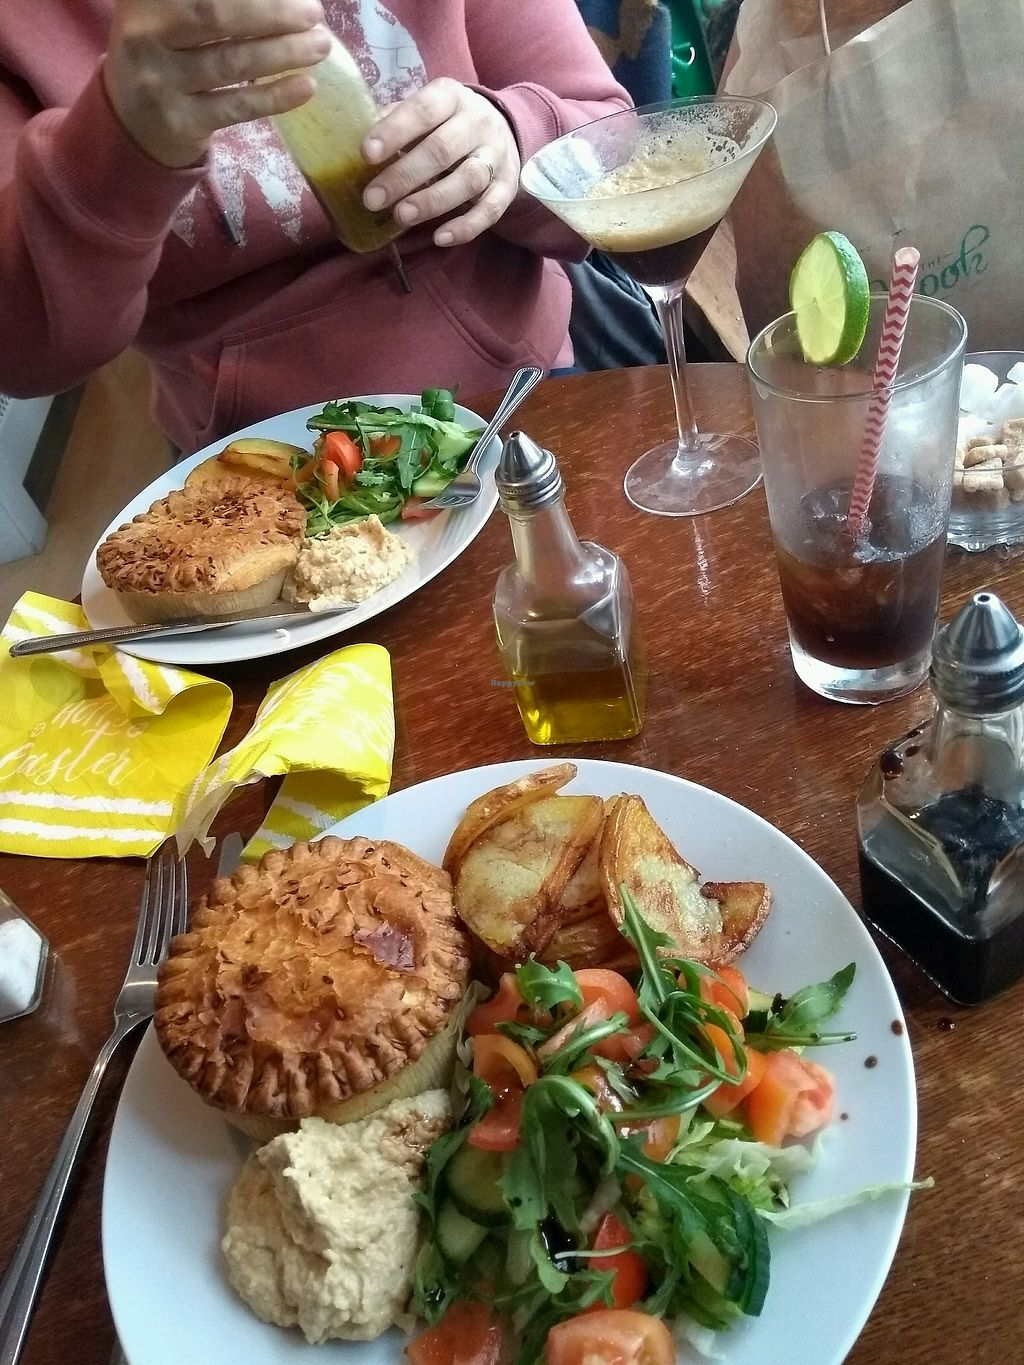 "Photo of The Fuchsia Caffe  by <a href=""/members/profile/Redheidi749"">Redheidi749</a> <br/>coronation pie, with Sautéed potatoes and salad. Martini expresso and cuba libre <br/> March 31, 2018  - <a href='/contact/abuse/image/90966/378988'>Report</a>"